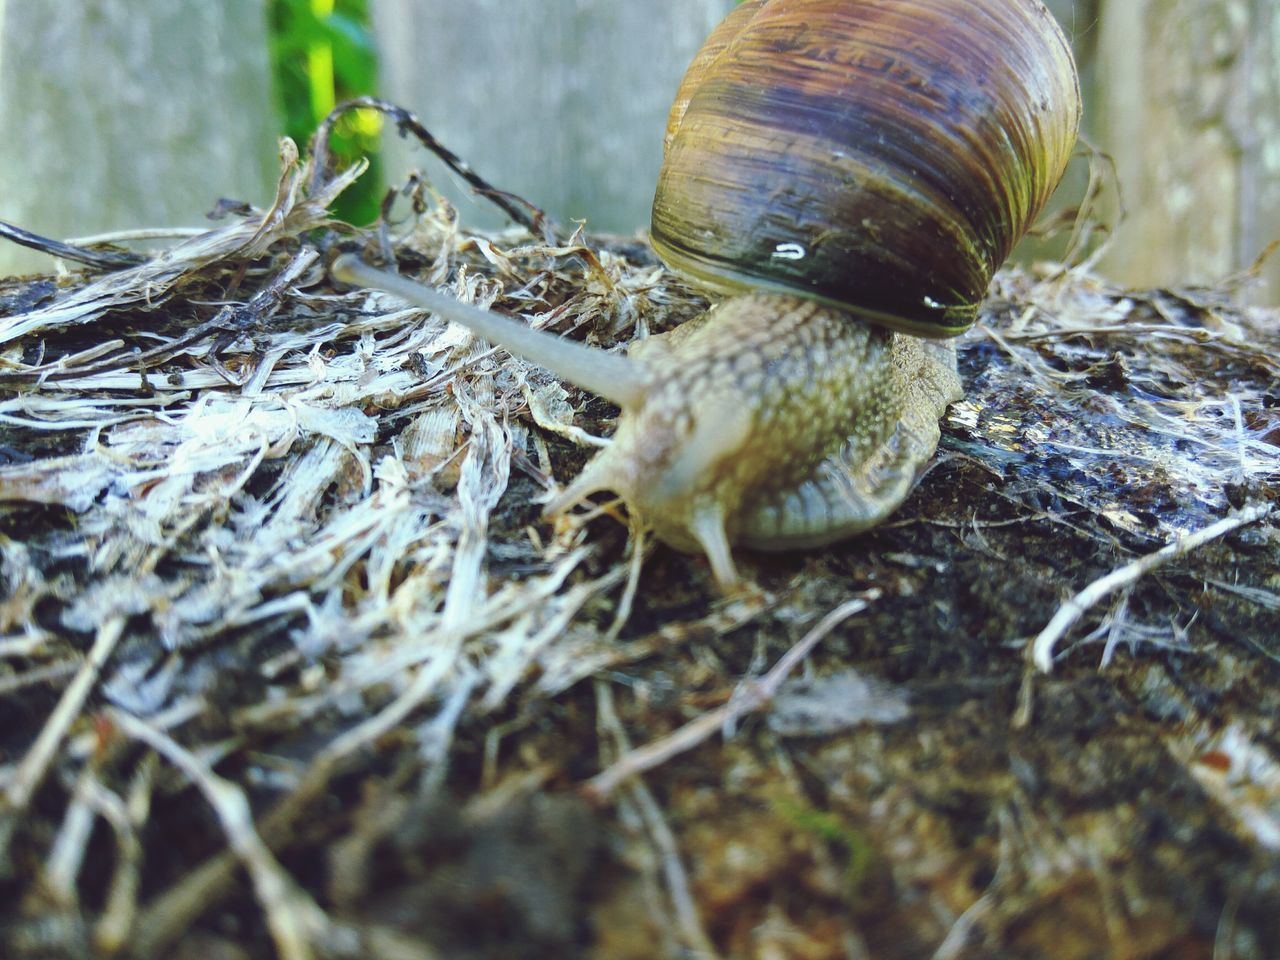 animal themes, one animal, animals in the wild, snail, wildlife, gastropod, nature, no people, close-up, day, outdoors, animal wildlife, fragility